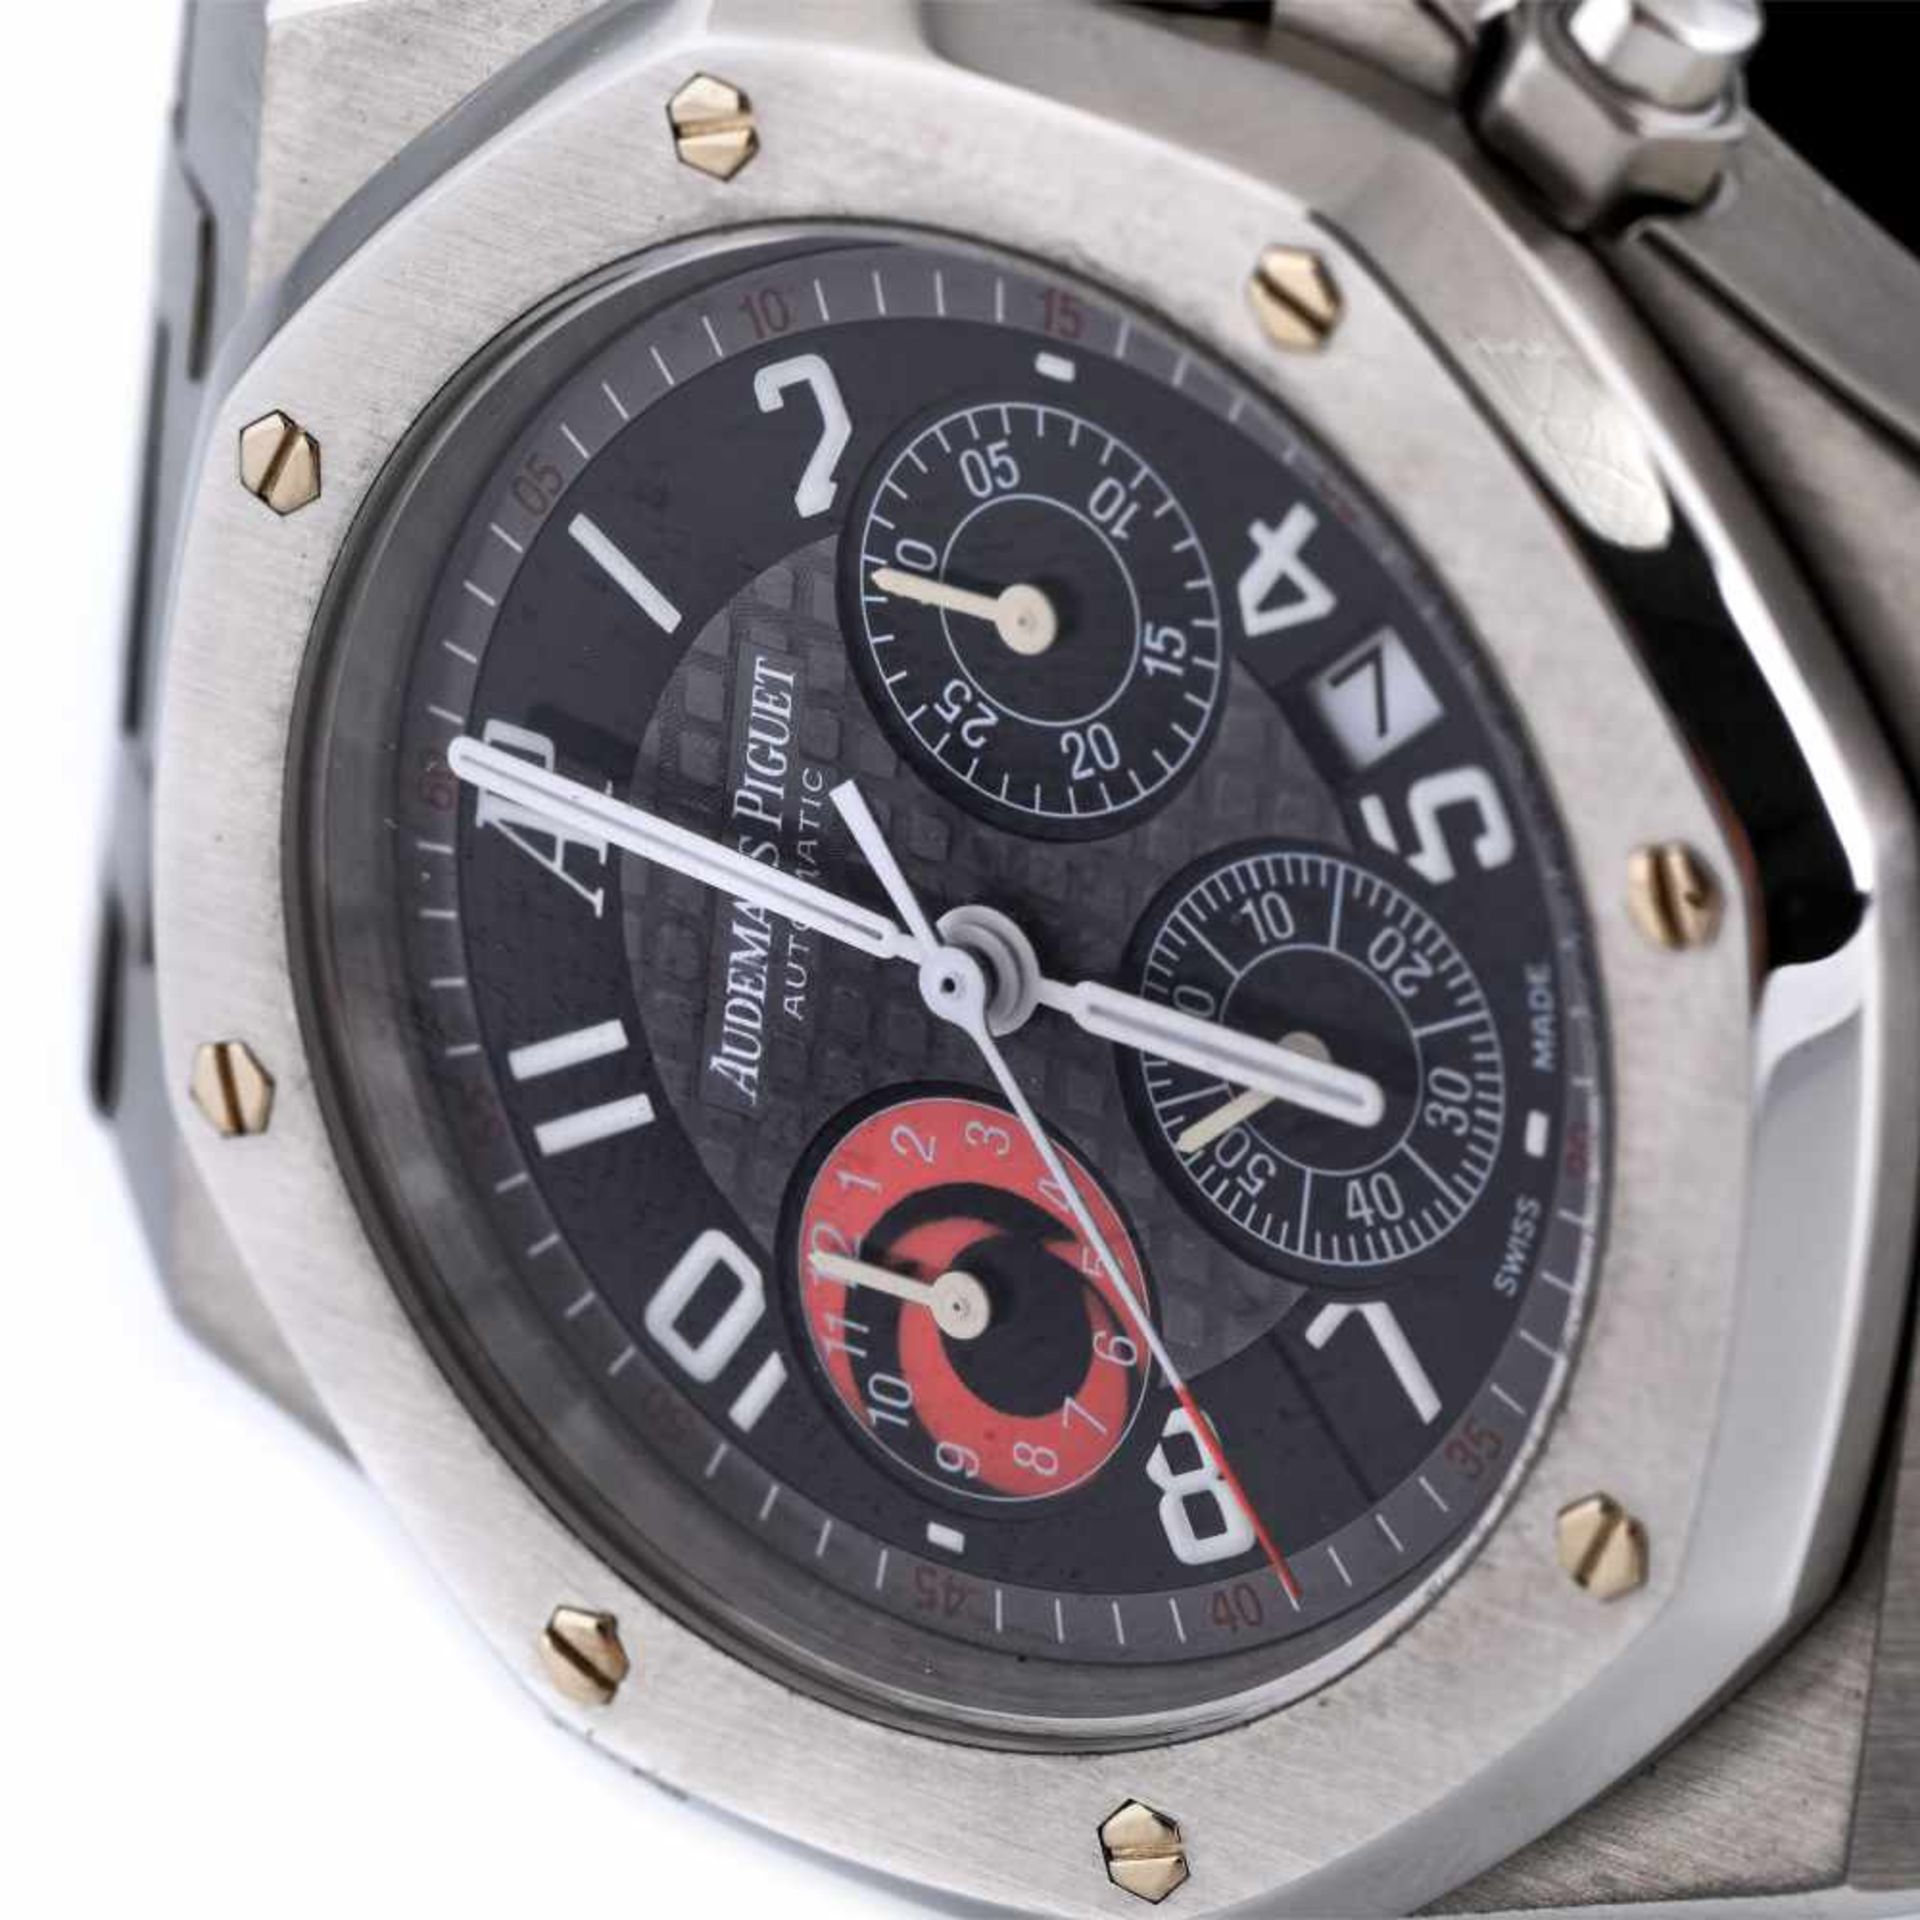 Audemars Piguet Royal Oak wristwatch, men, provenance documents - Bild 3 aus 4